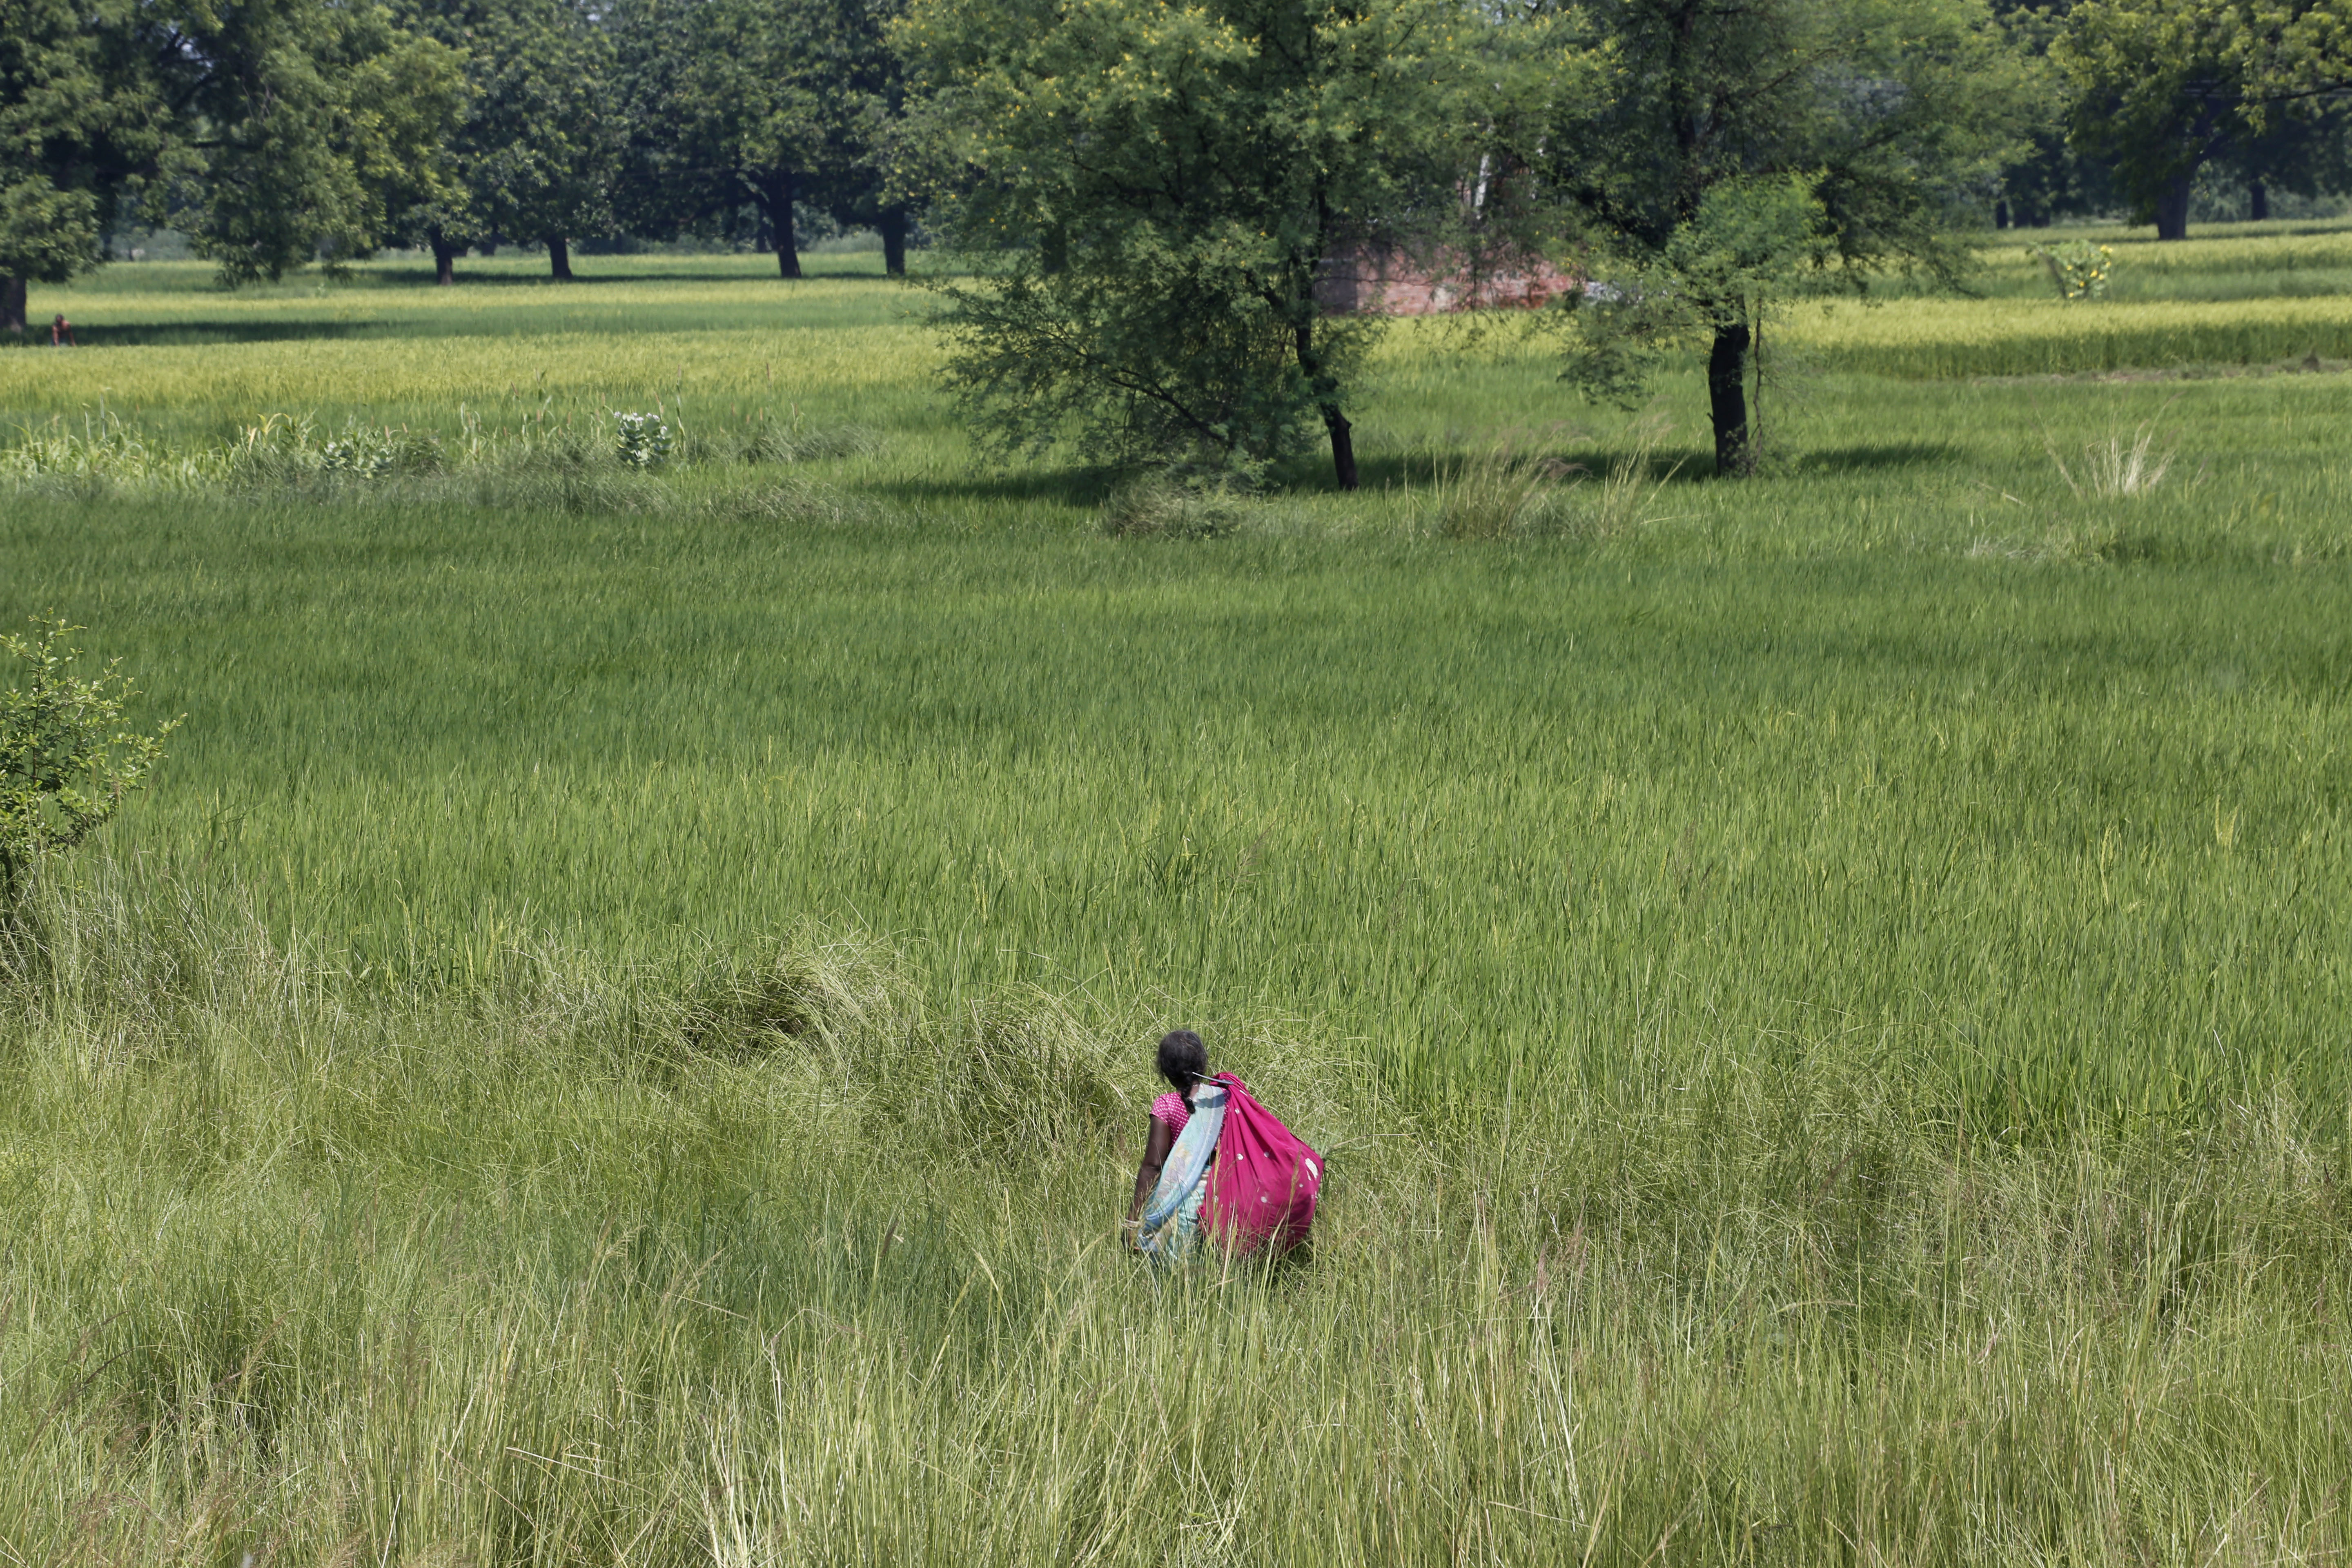 An Indian woman works at a paddy field on the outskirts of Allahabad - AP